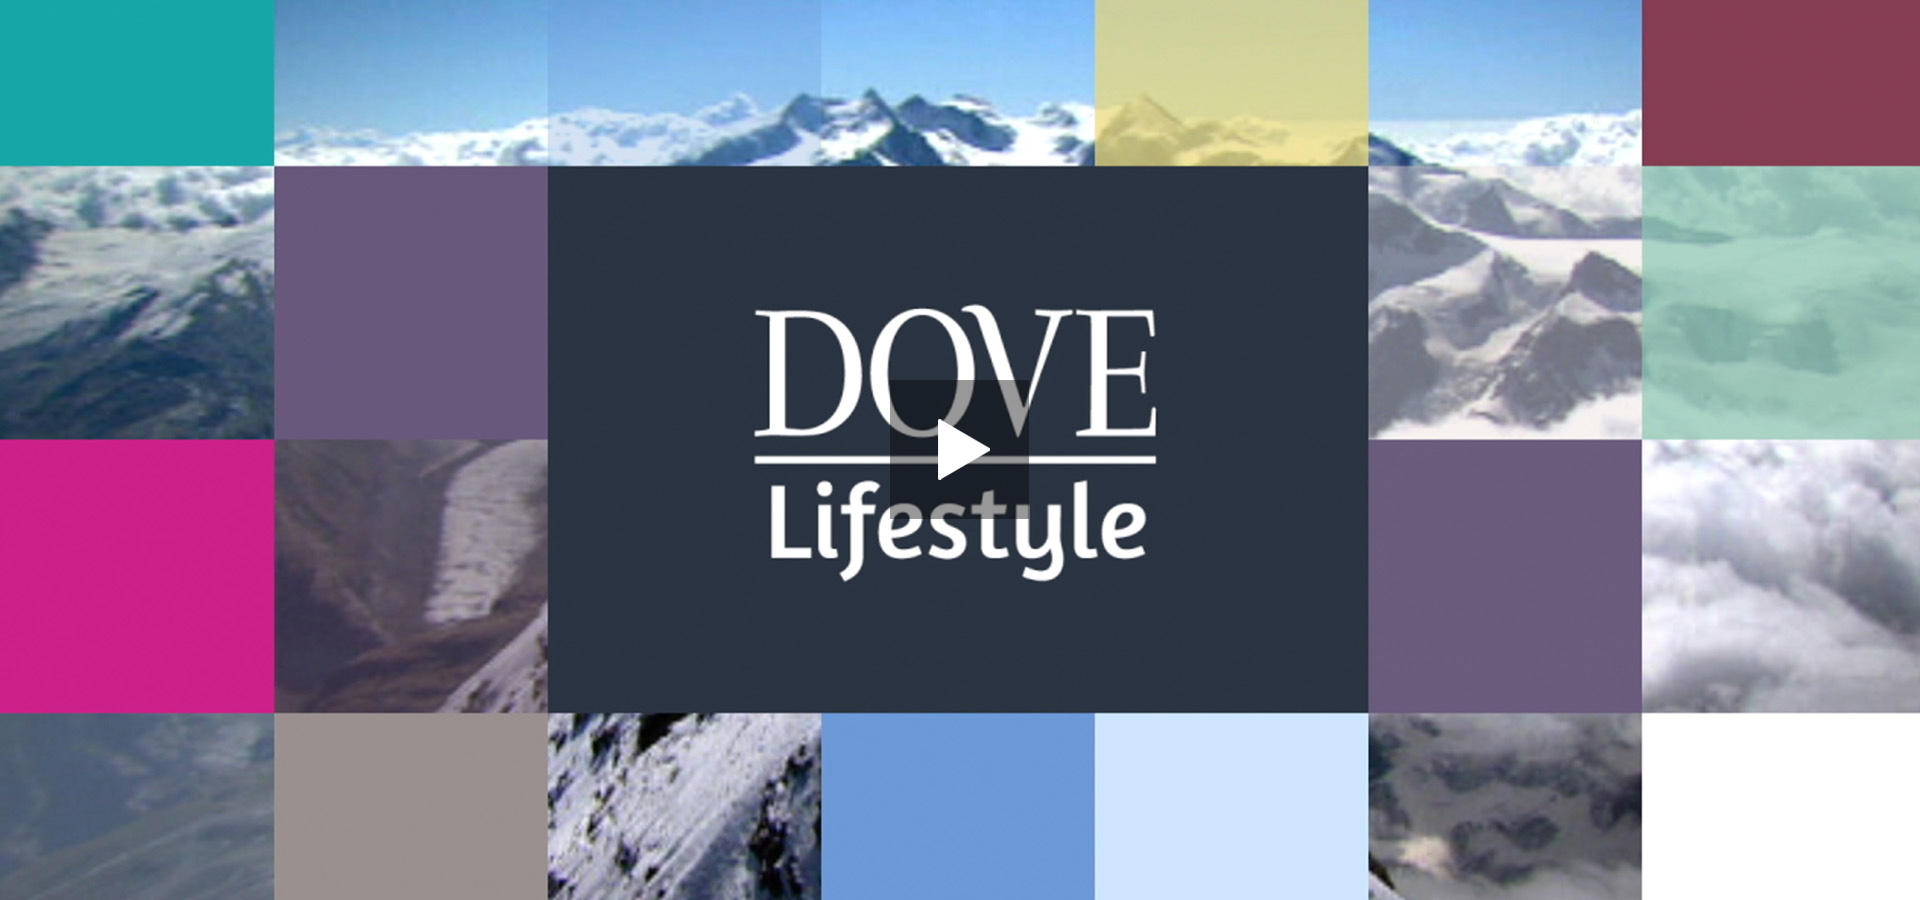 Monkey Talkie per Dove TV - Broadcast design - TV Branding - Promo - Idents